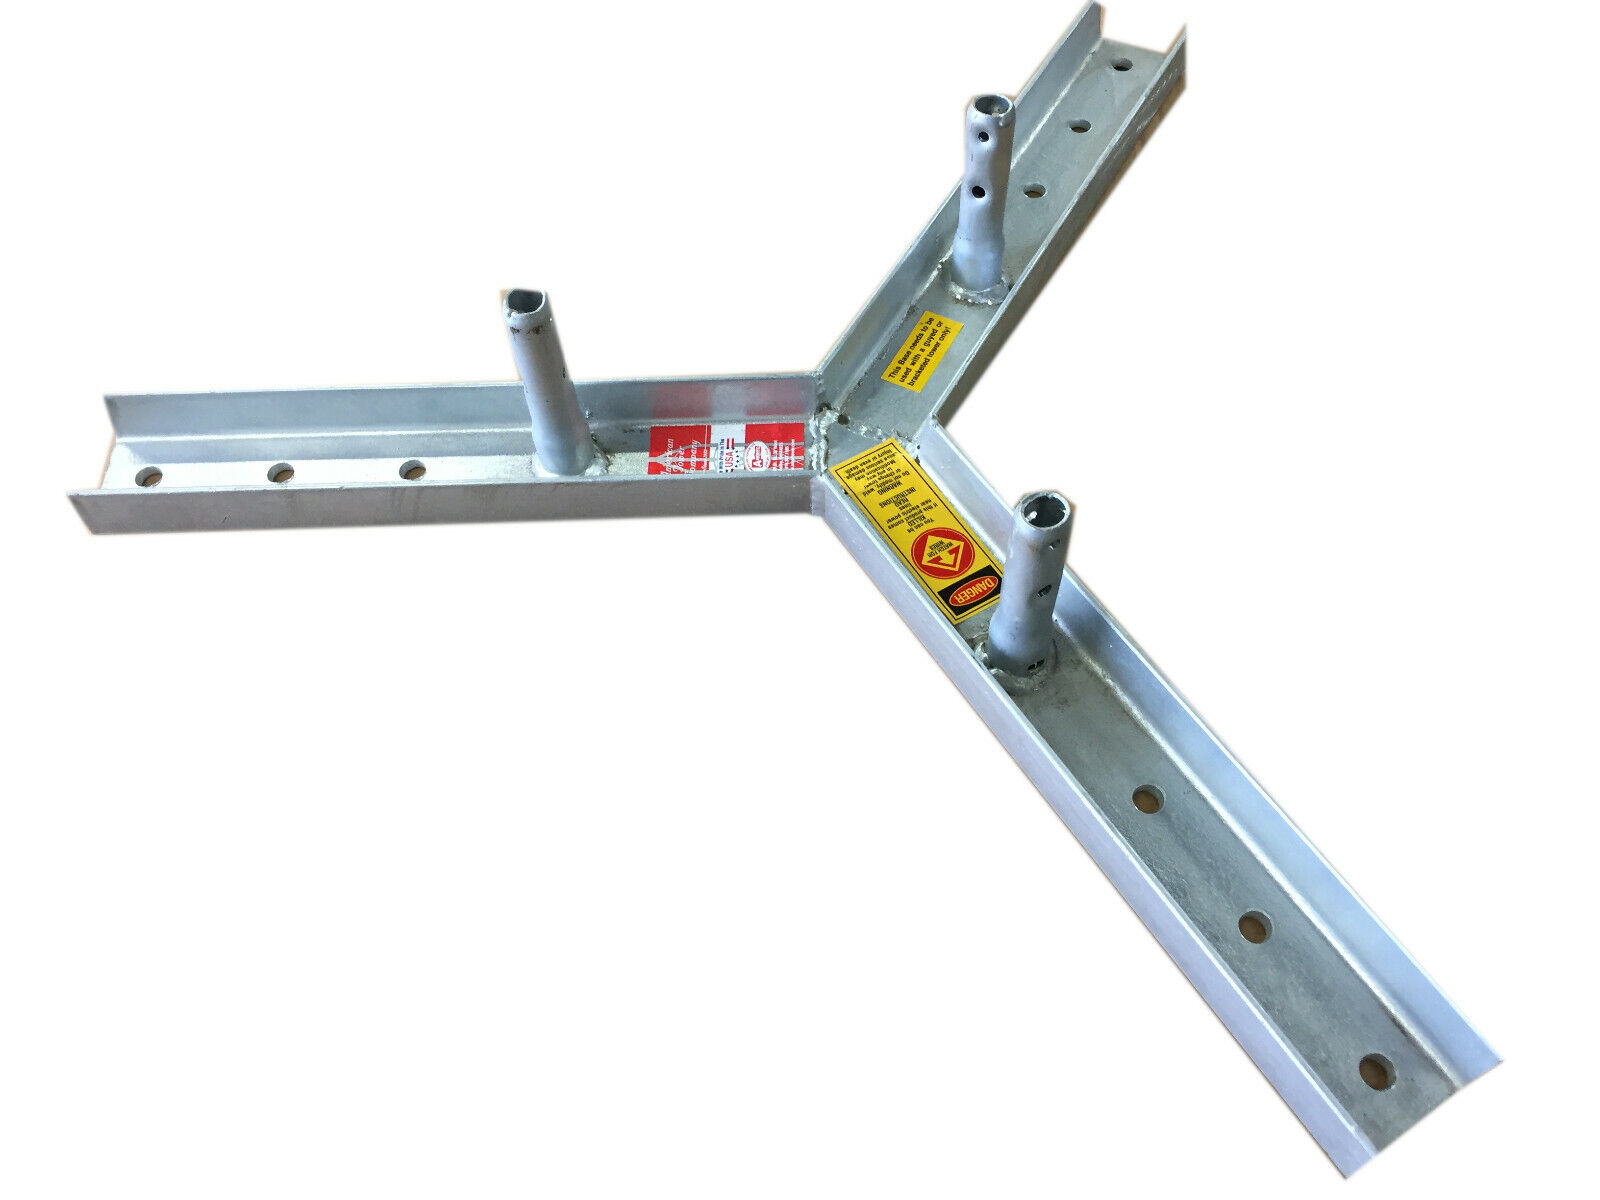 AMERITE SERIES, ROHN TOWER STYLE - AME-RF25 FLAT ROOF MOUNT BASE, OEM . Available Now for 299.00